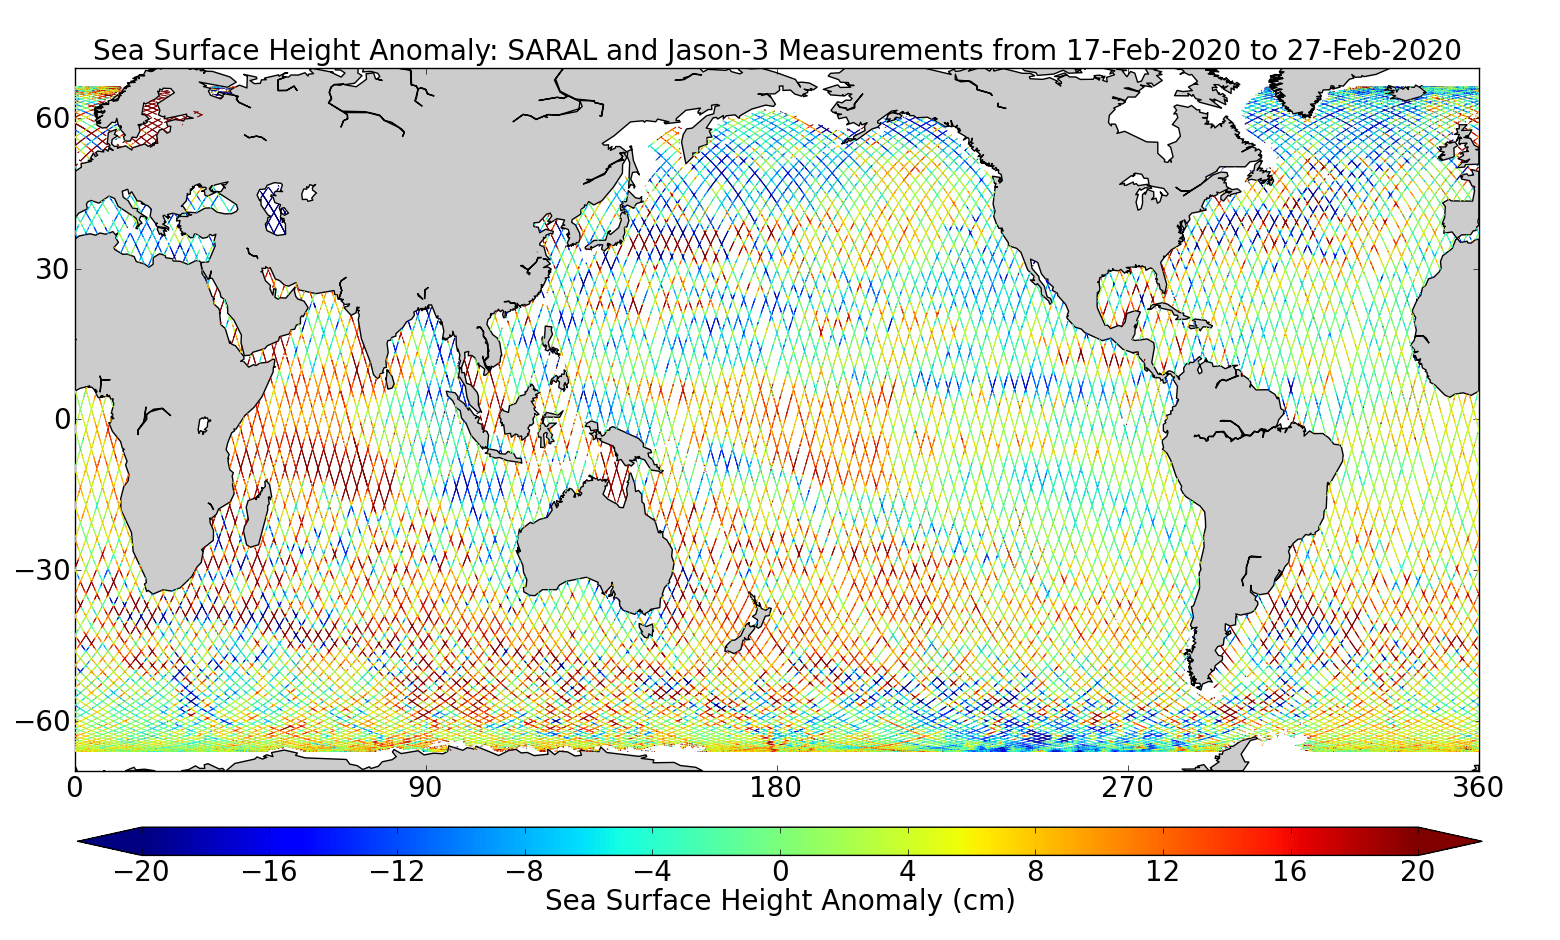 Sea Surface Height Anomaly: SARAL and Jason-3 Measurements from 17-Feb-2020 to 27-Feb-2020